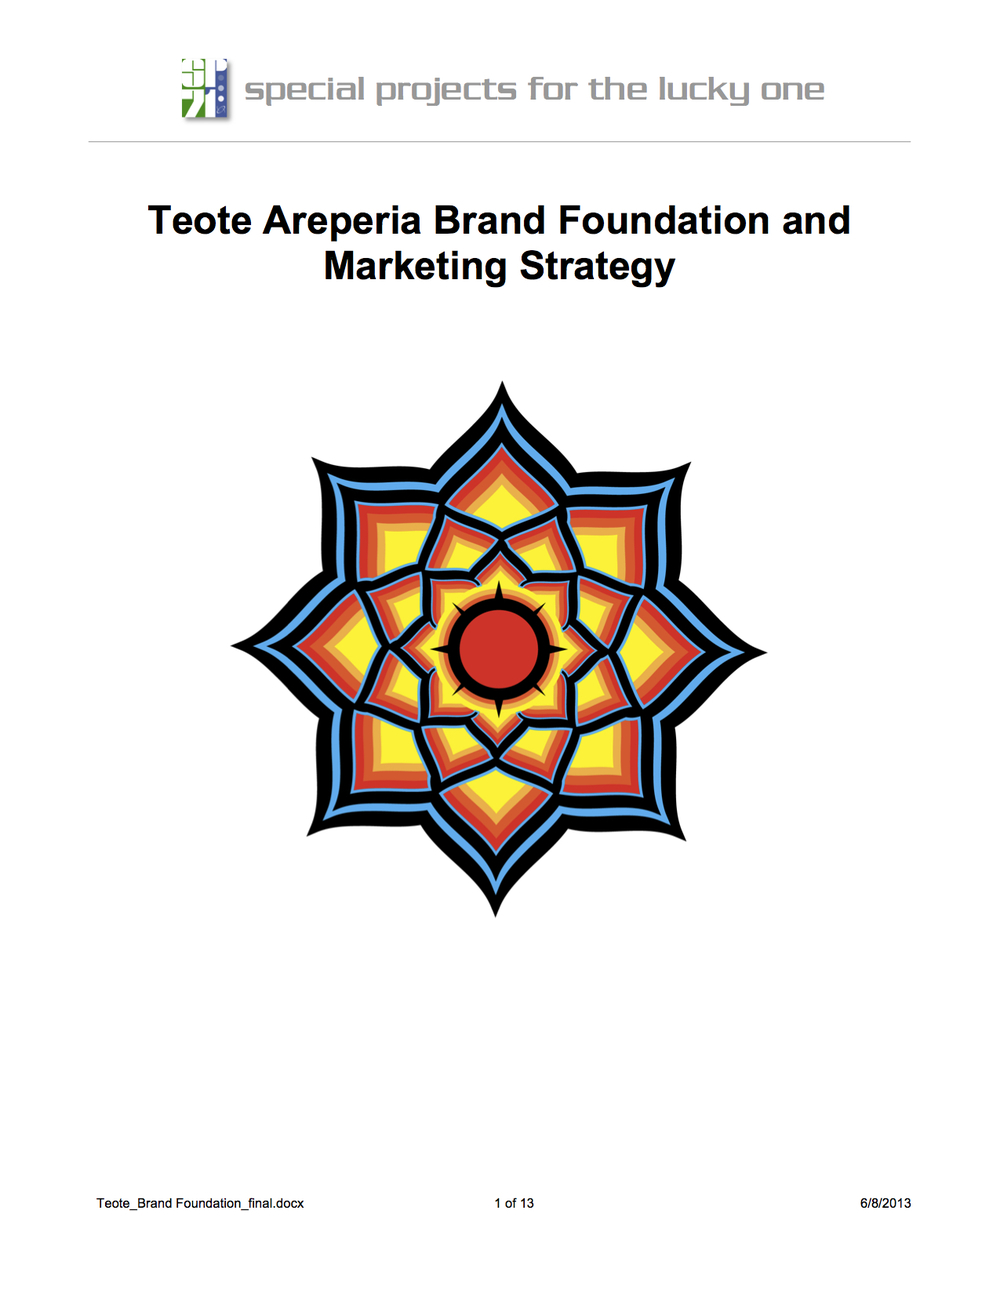 Teote_Brand Foundation_final.jpg